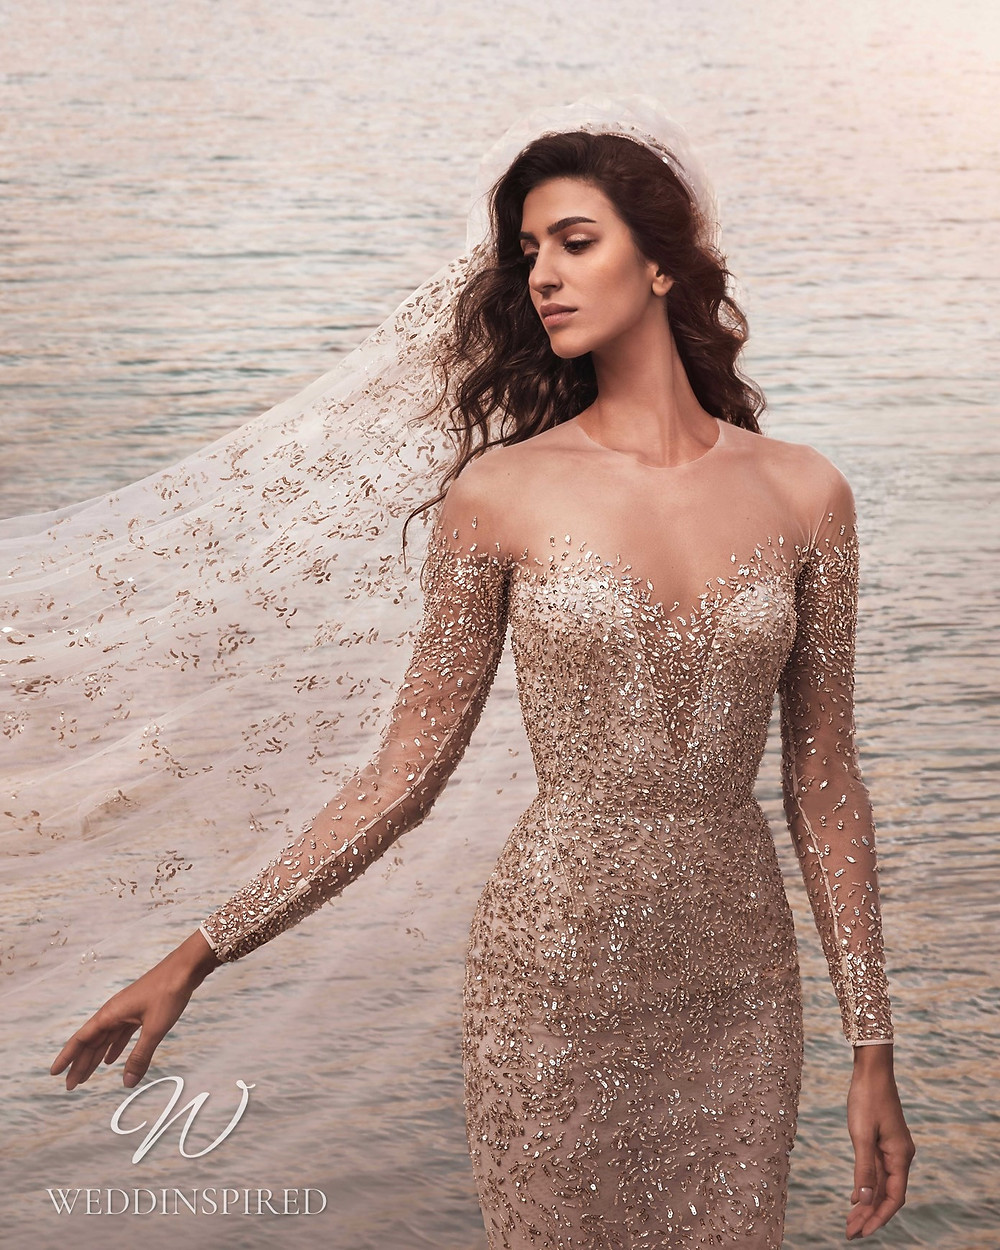 A Zuhair Murad Fall 2021 blush sparkly mermaid wedding dress with long sleeves and an illusion neckline